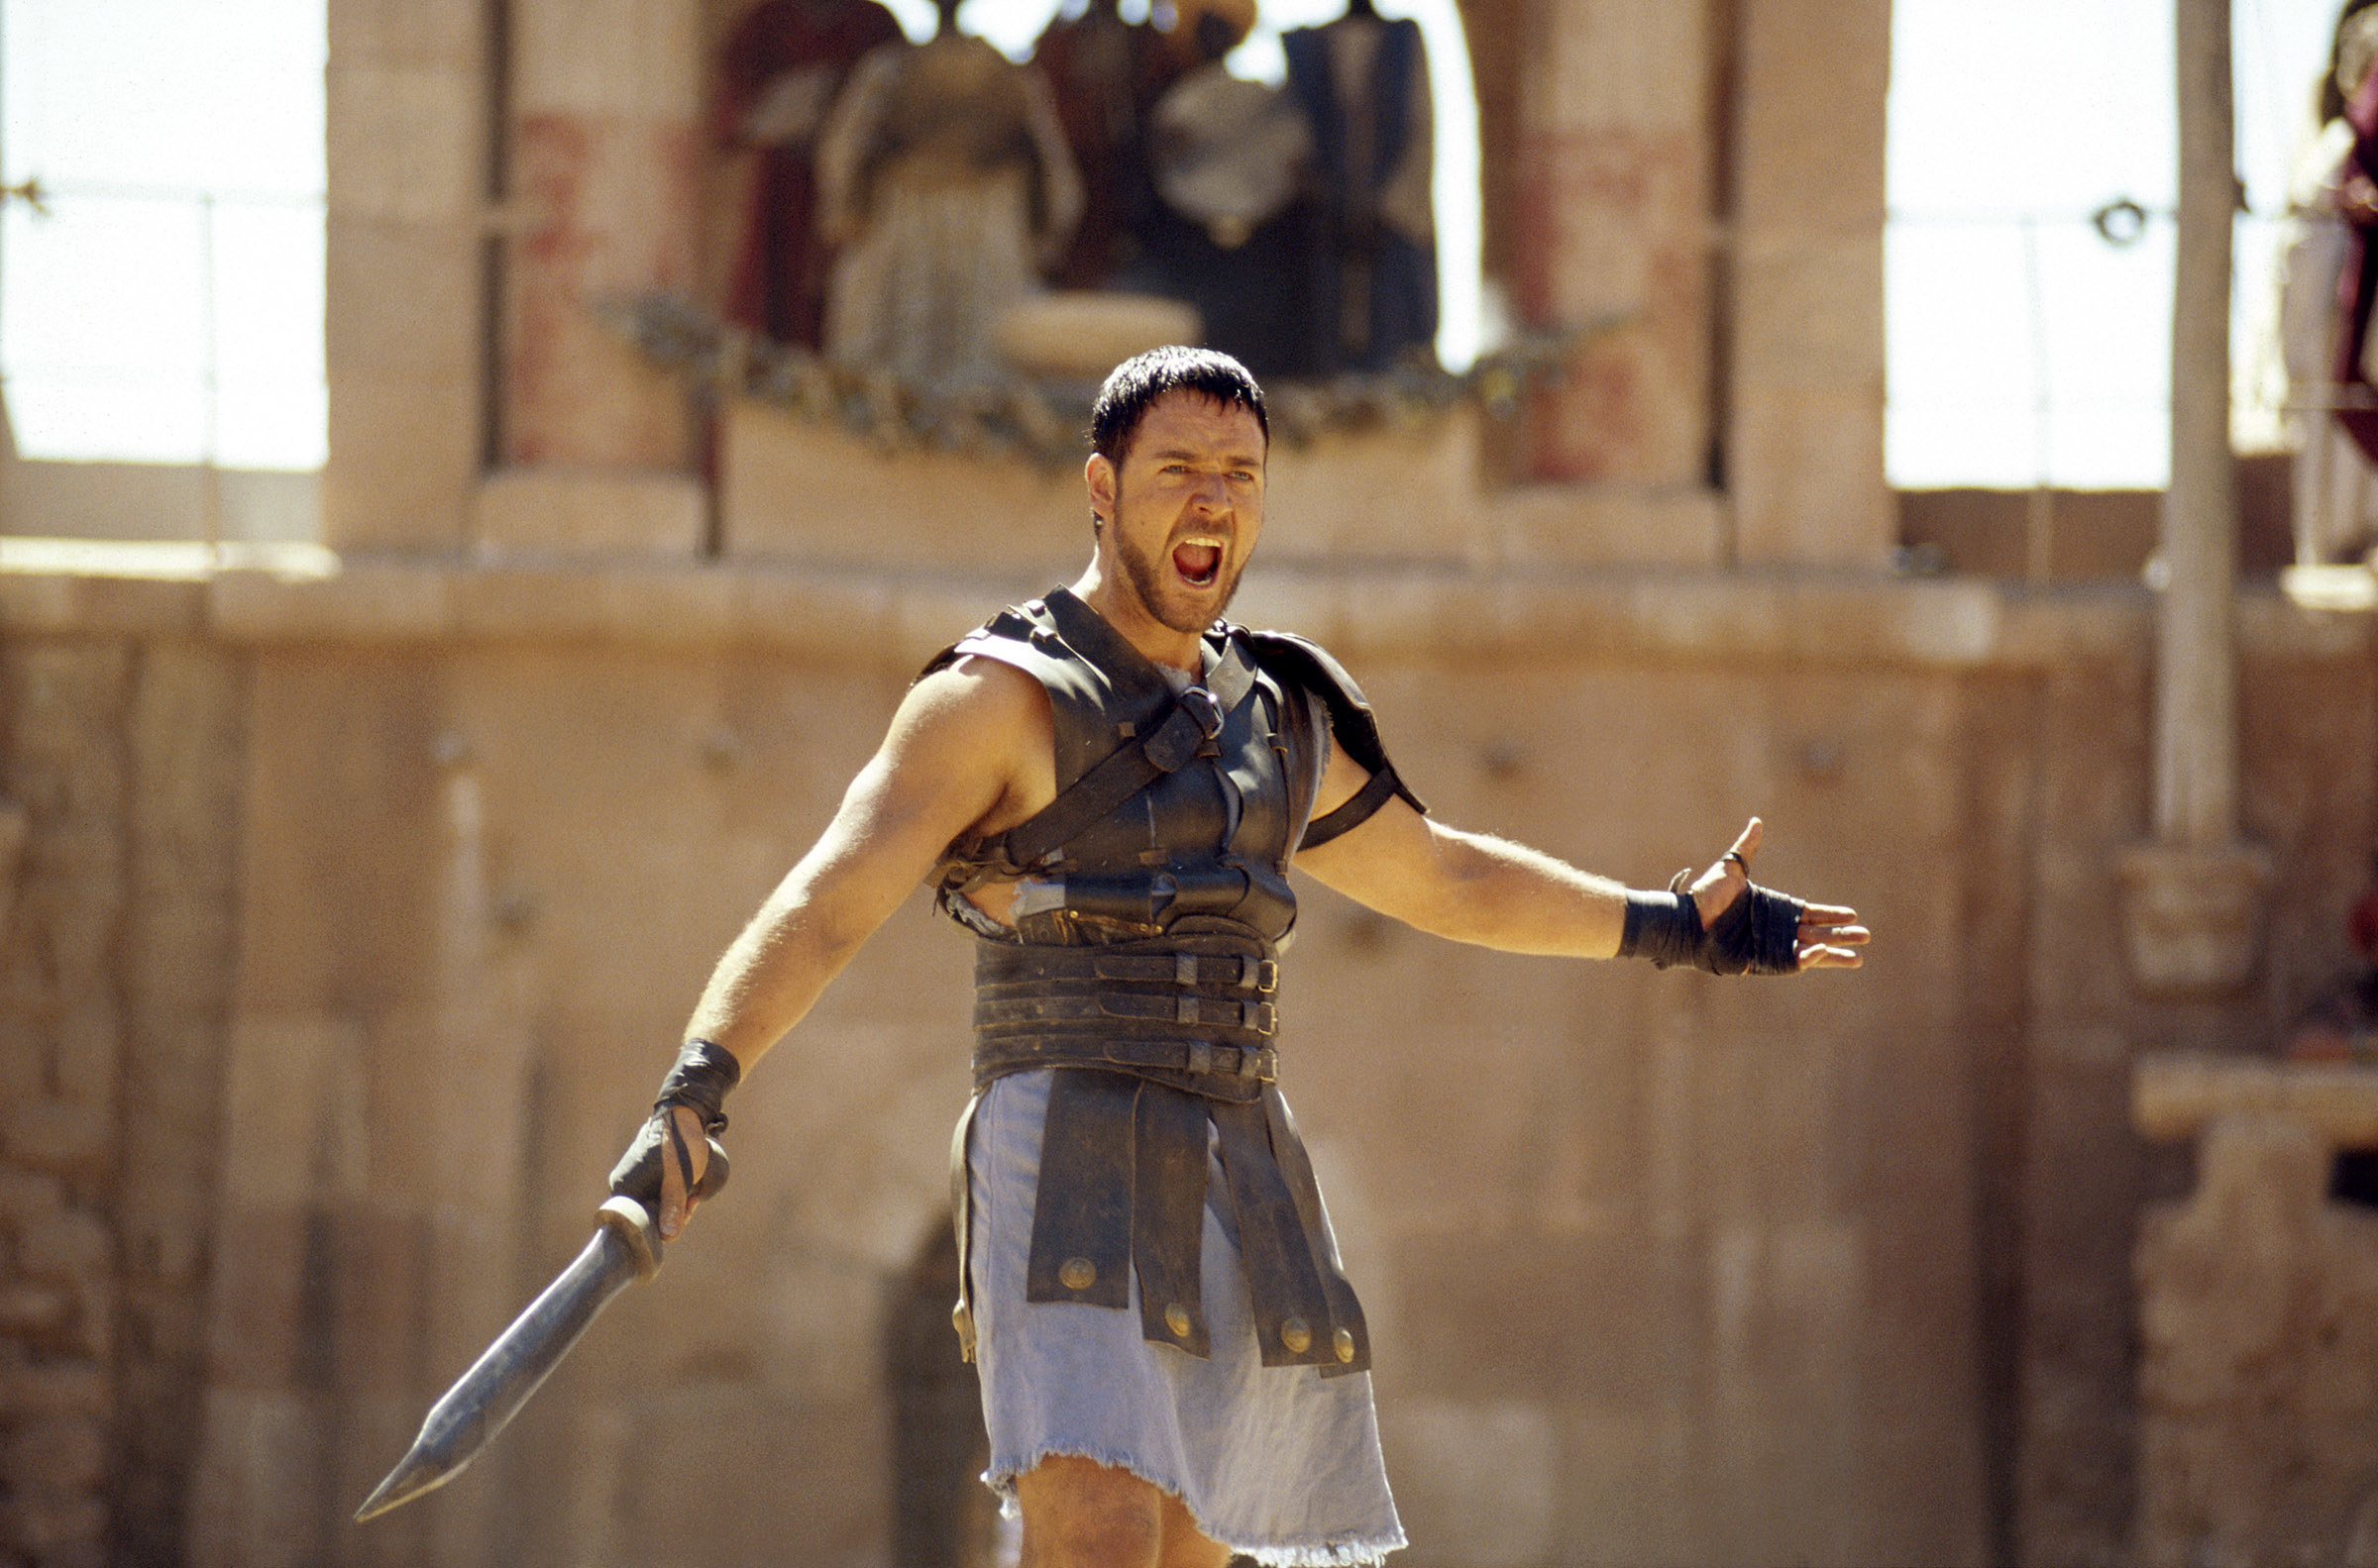 Crowe as the gladiator